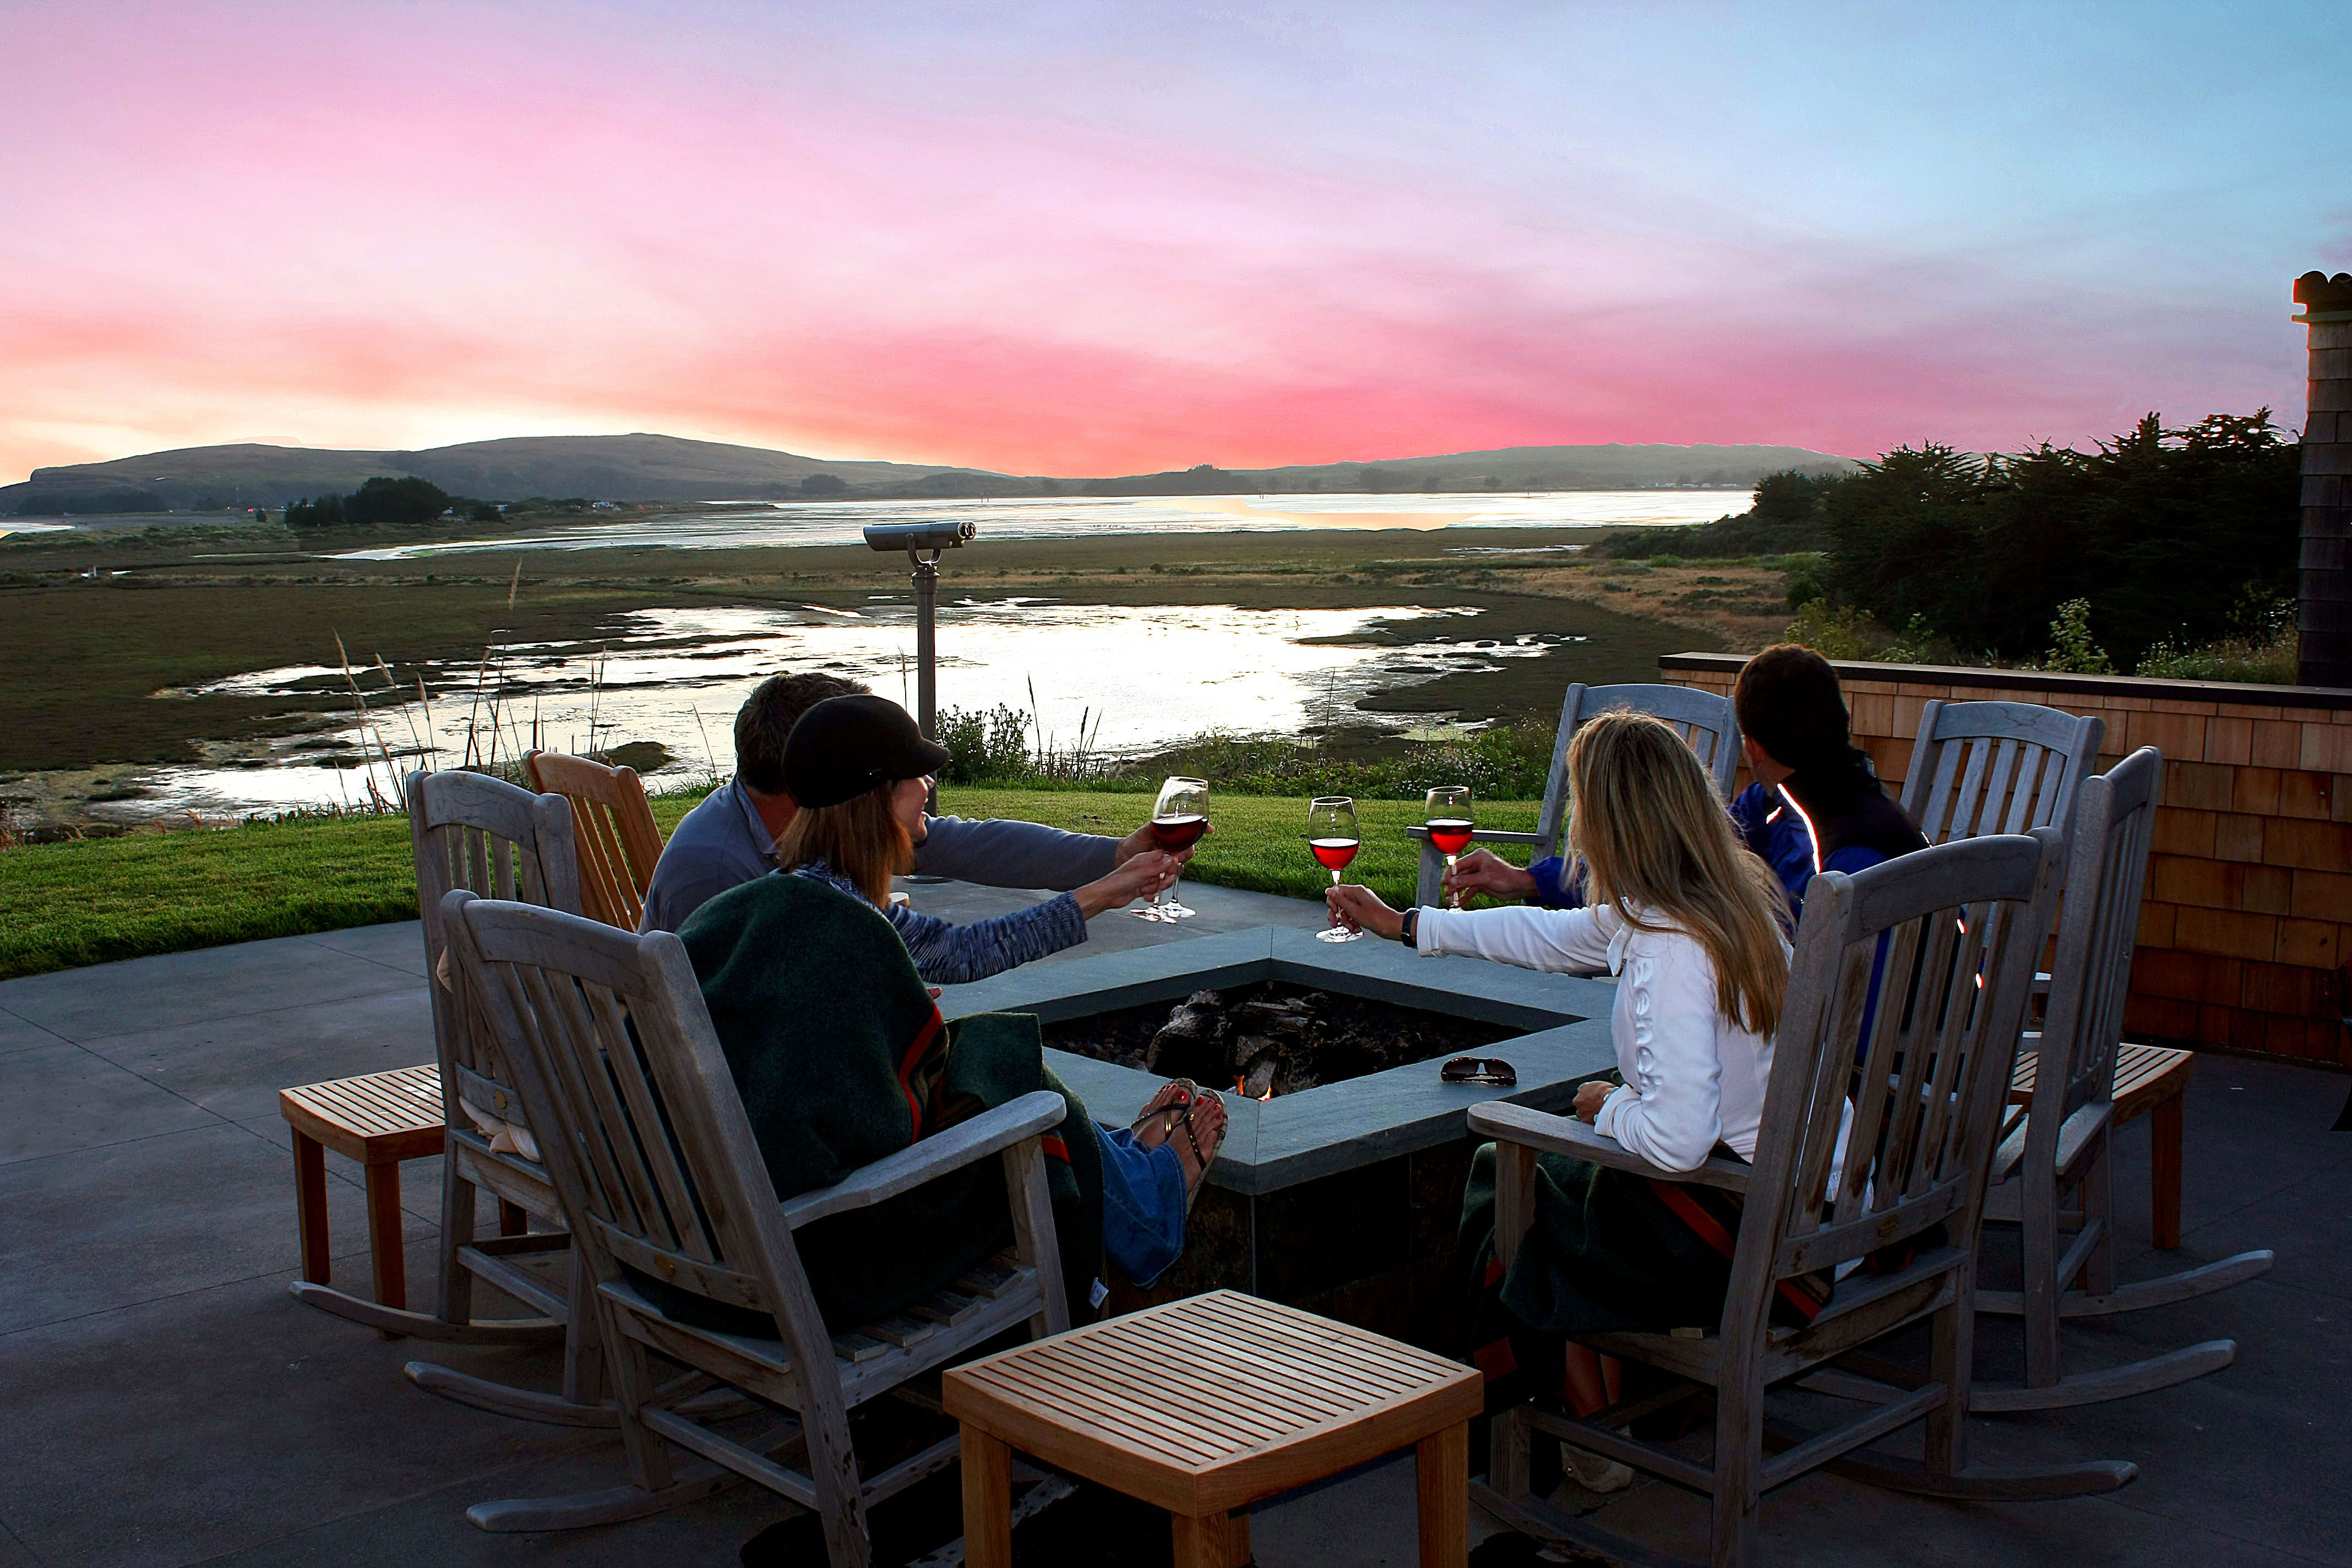 The Duck Club in Bodega Bay, CA has been named one of the 10 Most